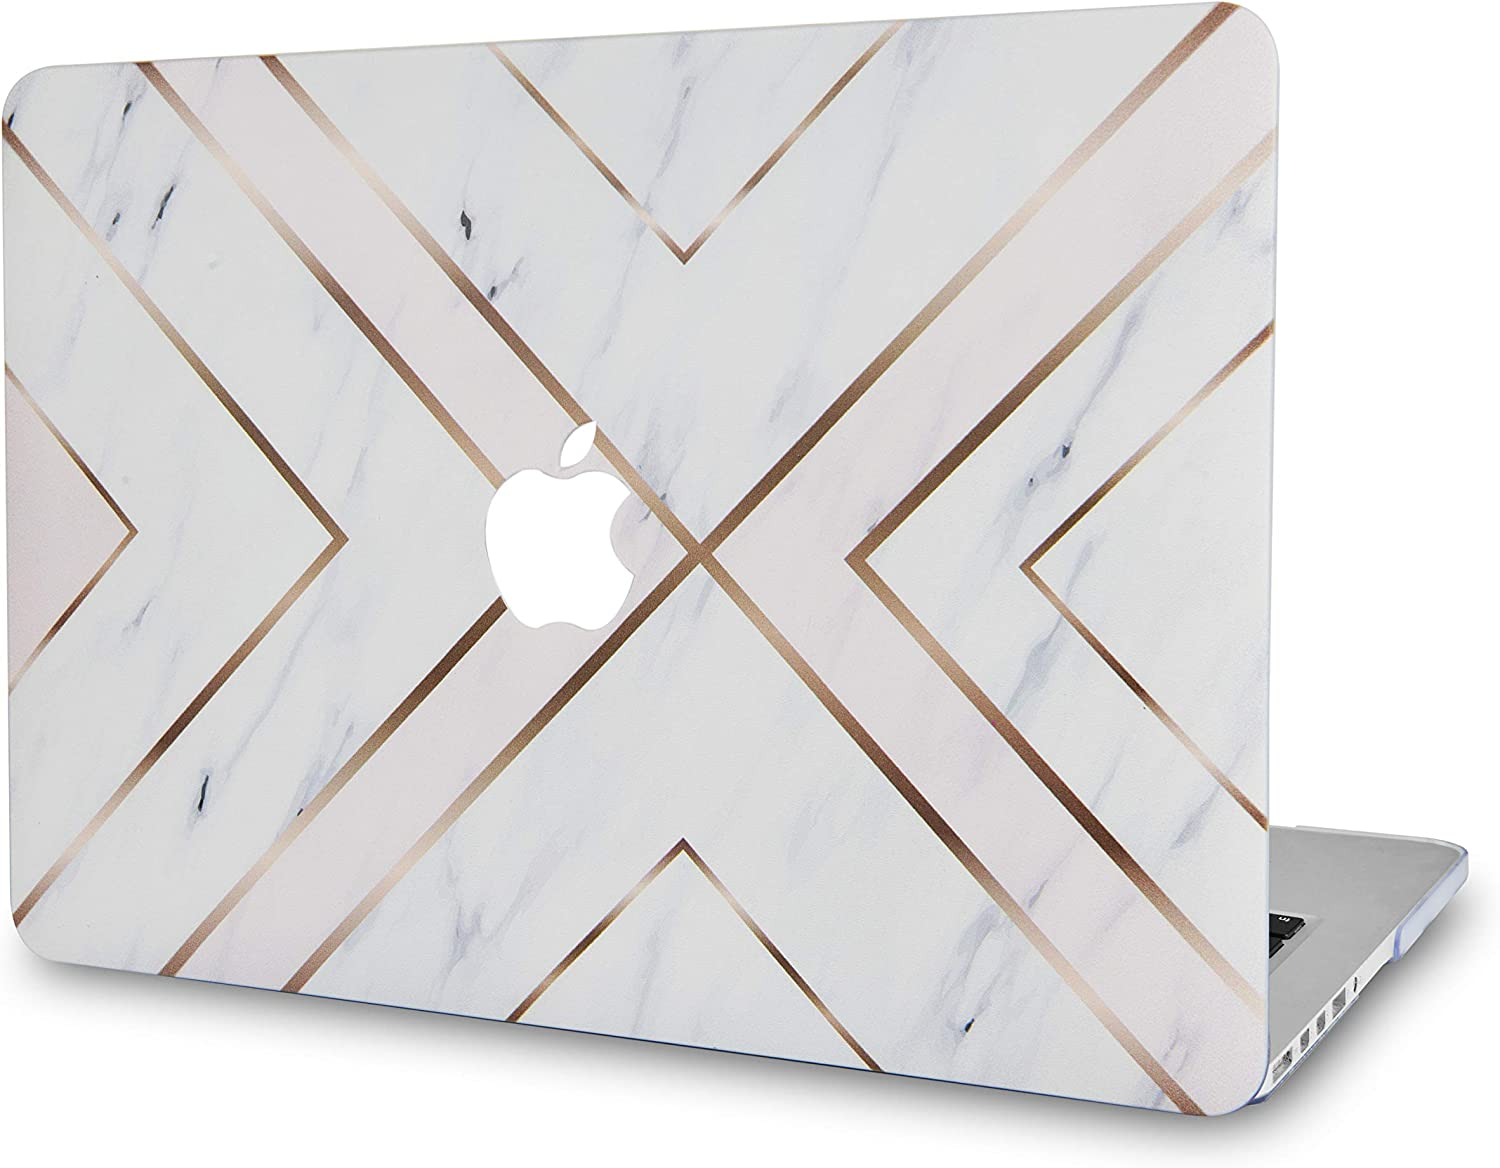 "LuvCase Laptop Case for Old MacBook Pro 13"" Retina Display (2015/2014/2013/2012 Release) A1502/A1425 Rubberized Plastic Hard Shell Cover (White Marble Gold Stripes)"